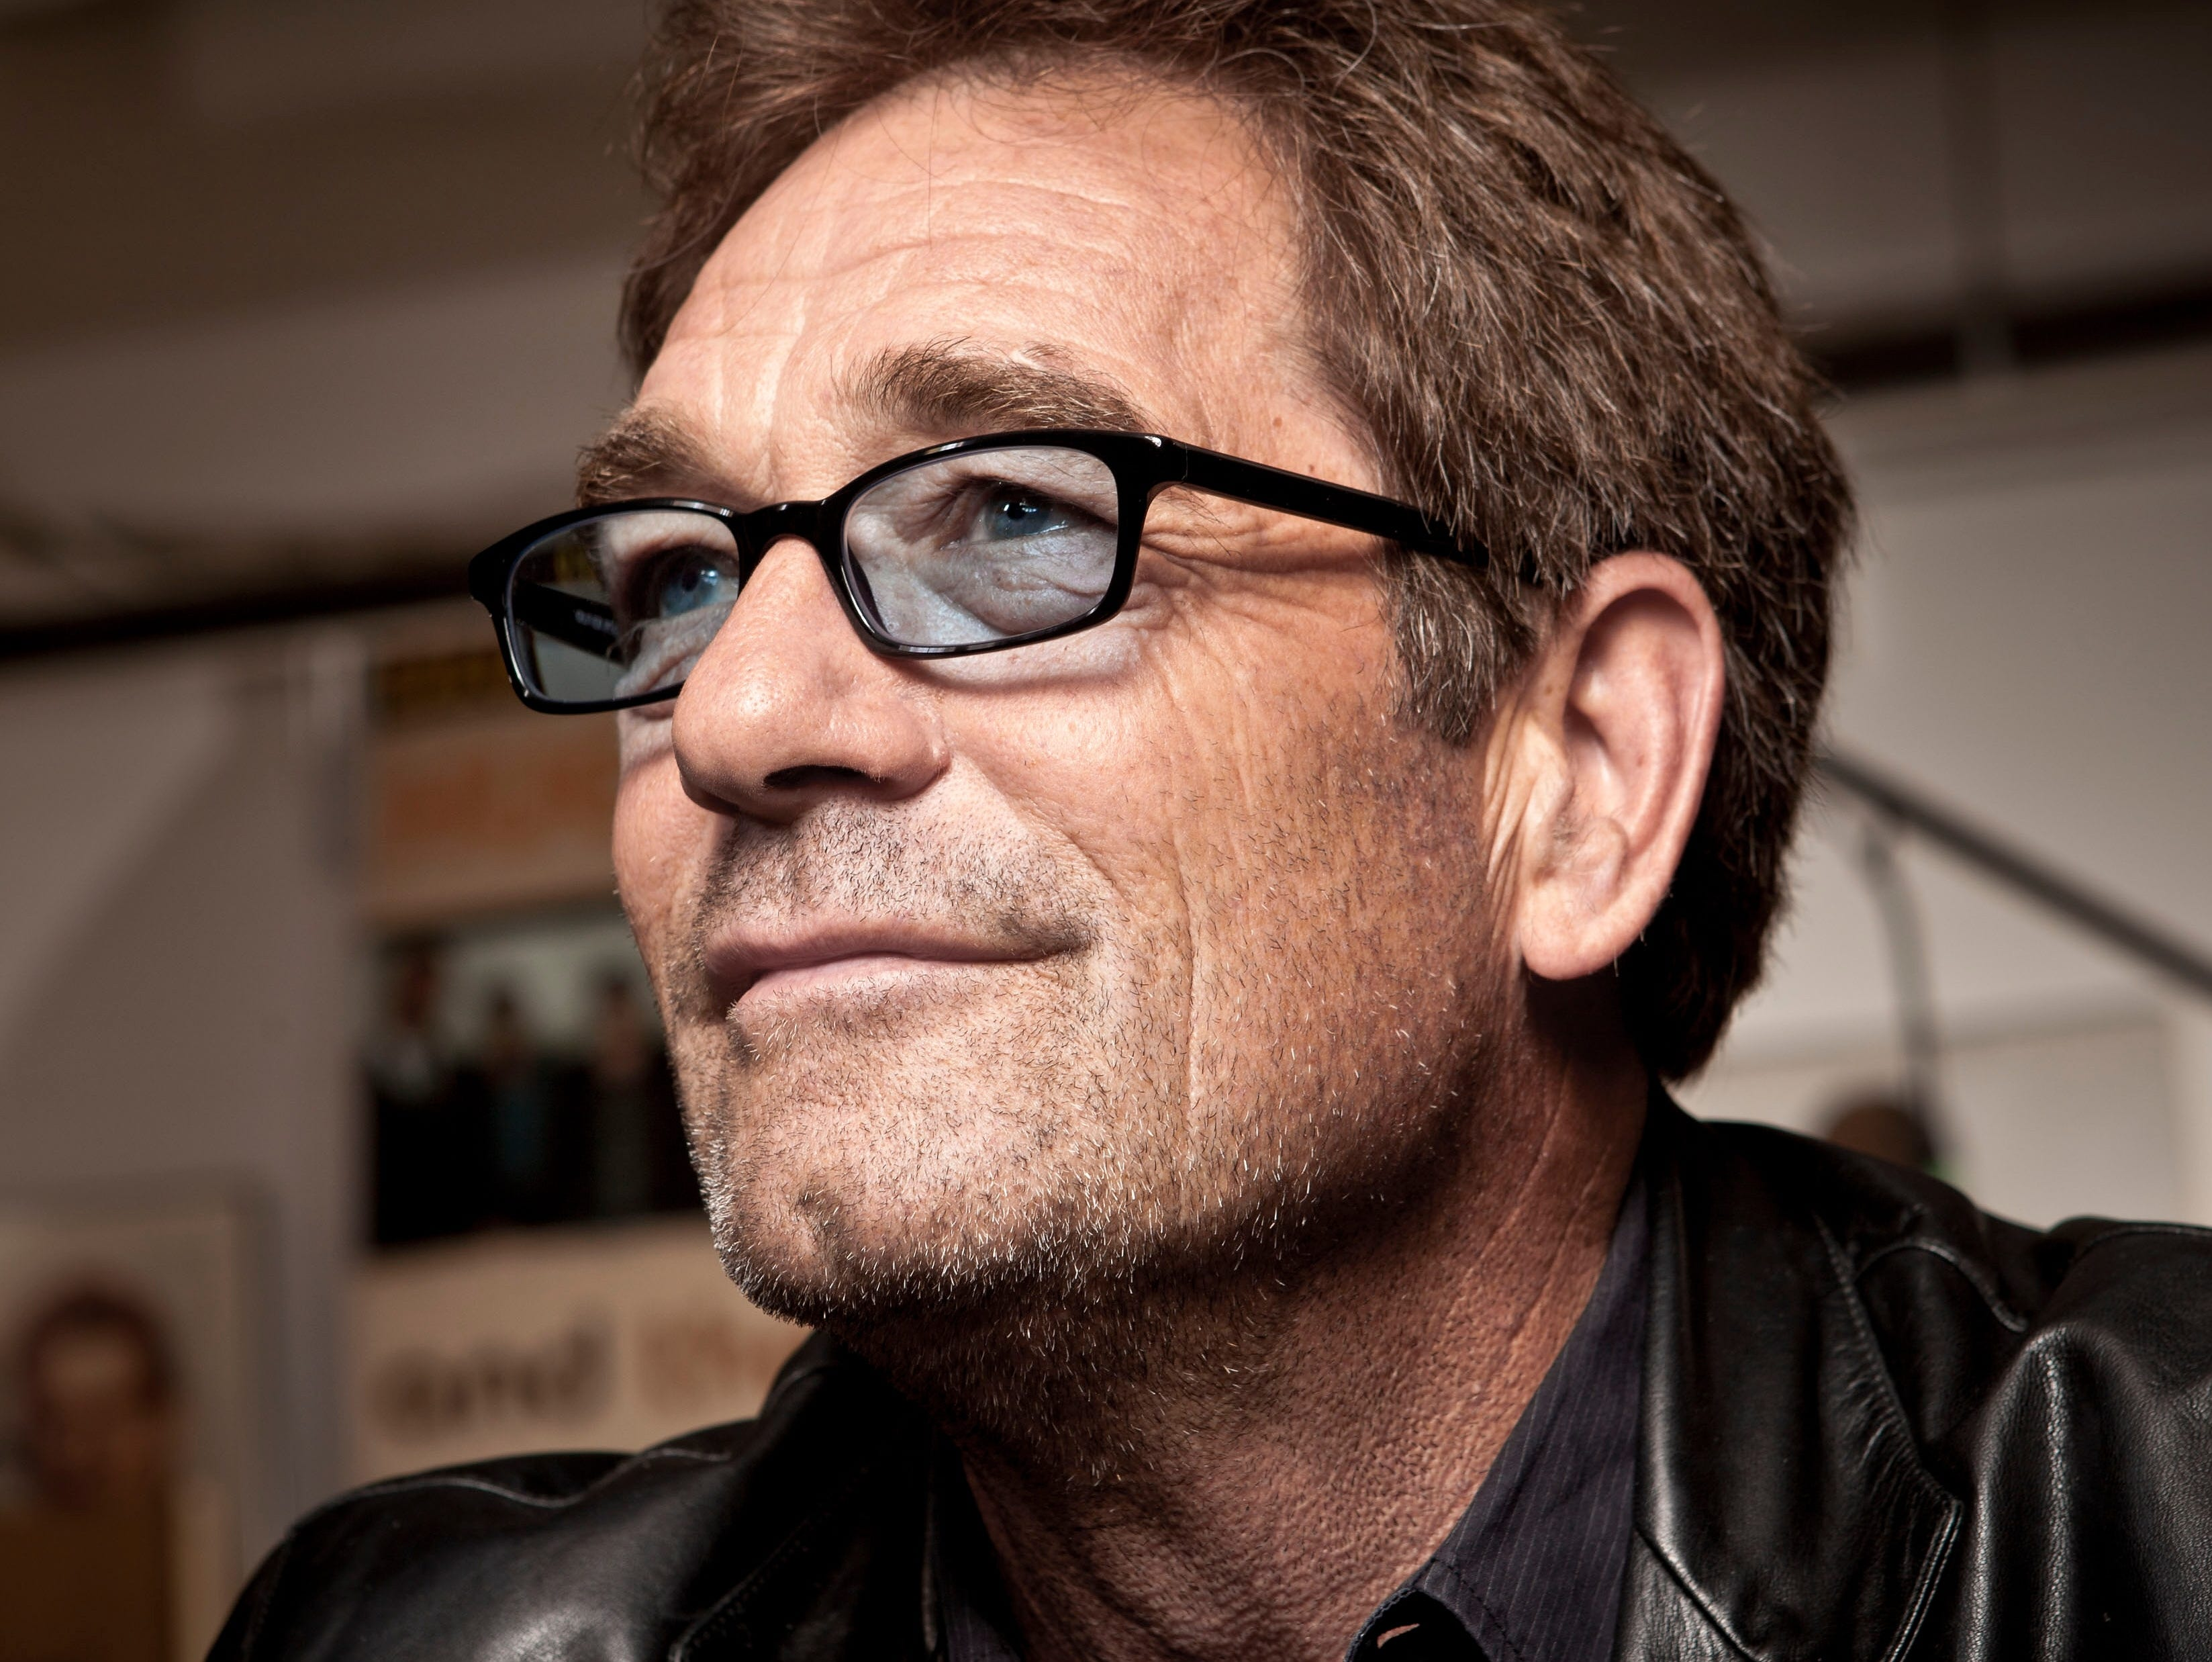 huey lewis - the power of lovehuey lewis and the news – hip to be square, huey lewis - the power of love, huey lewis and the news - back in time, huey lewis and the news sports, huey lewis fore, huey lewis and the news - power of love, huey lewis and the news–back in time, huey lewis back to the future, huey lewis and the news слушать, huey lewis power of love скачать, huey lewis and the news small world, huey lewis and the news - if this is it, huey lewis american psycho, huey lewis the news the power of love lyrics, huey lewis and the news jacob's ladder, huey lewis and the news mp3, huey lewis & the news stuck with you, huey lewis and, huey lewis sports, huey lewis and the news - fore